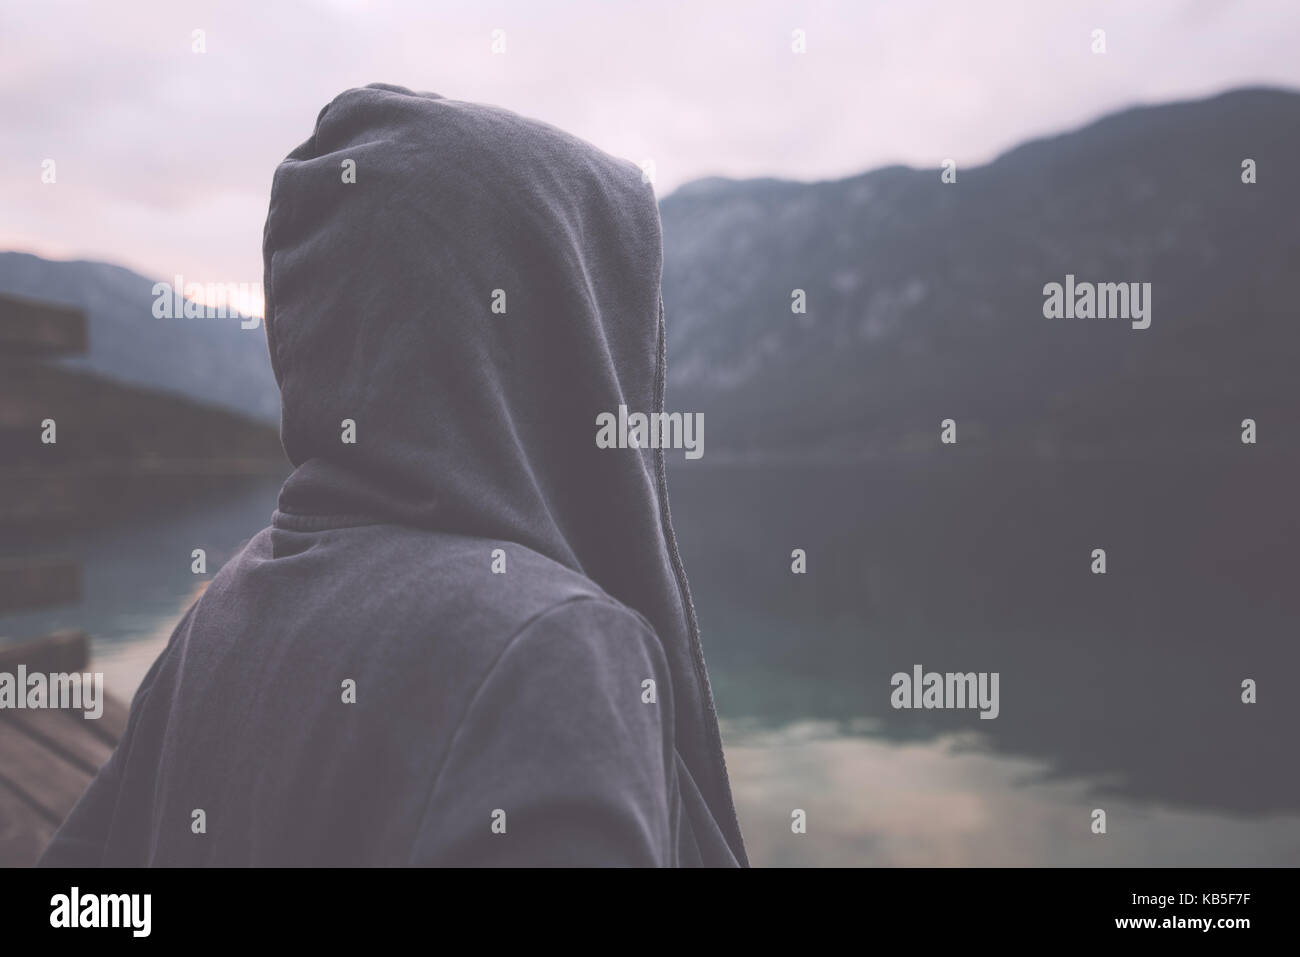 Gloomy nostalgic portrait of sad lonely melancholic adult female with hooded jacket standing on the lake shore in - Stock Image